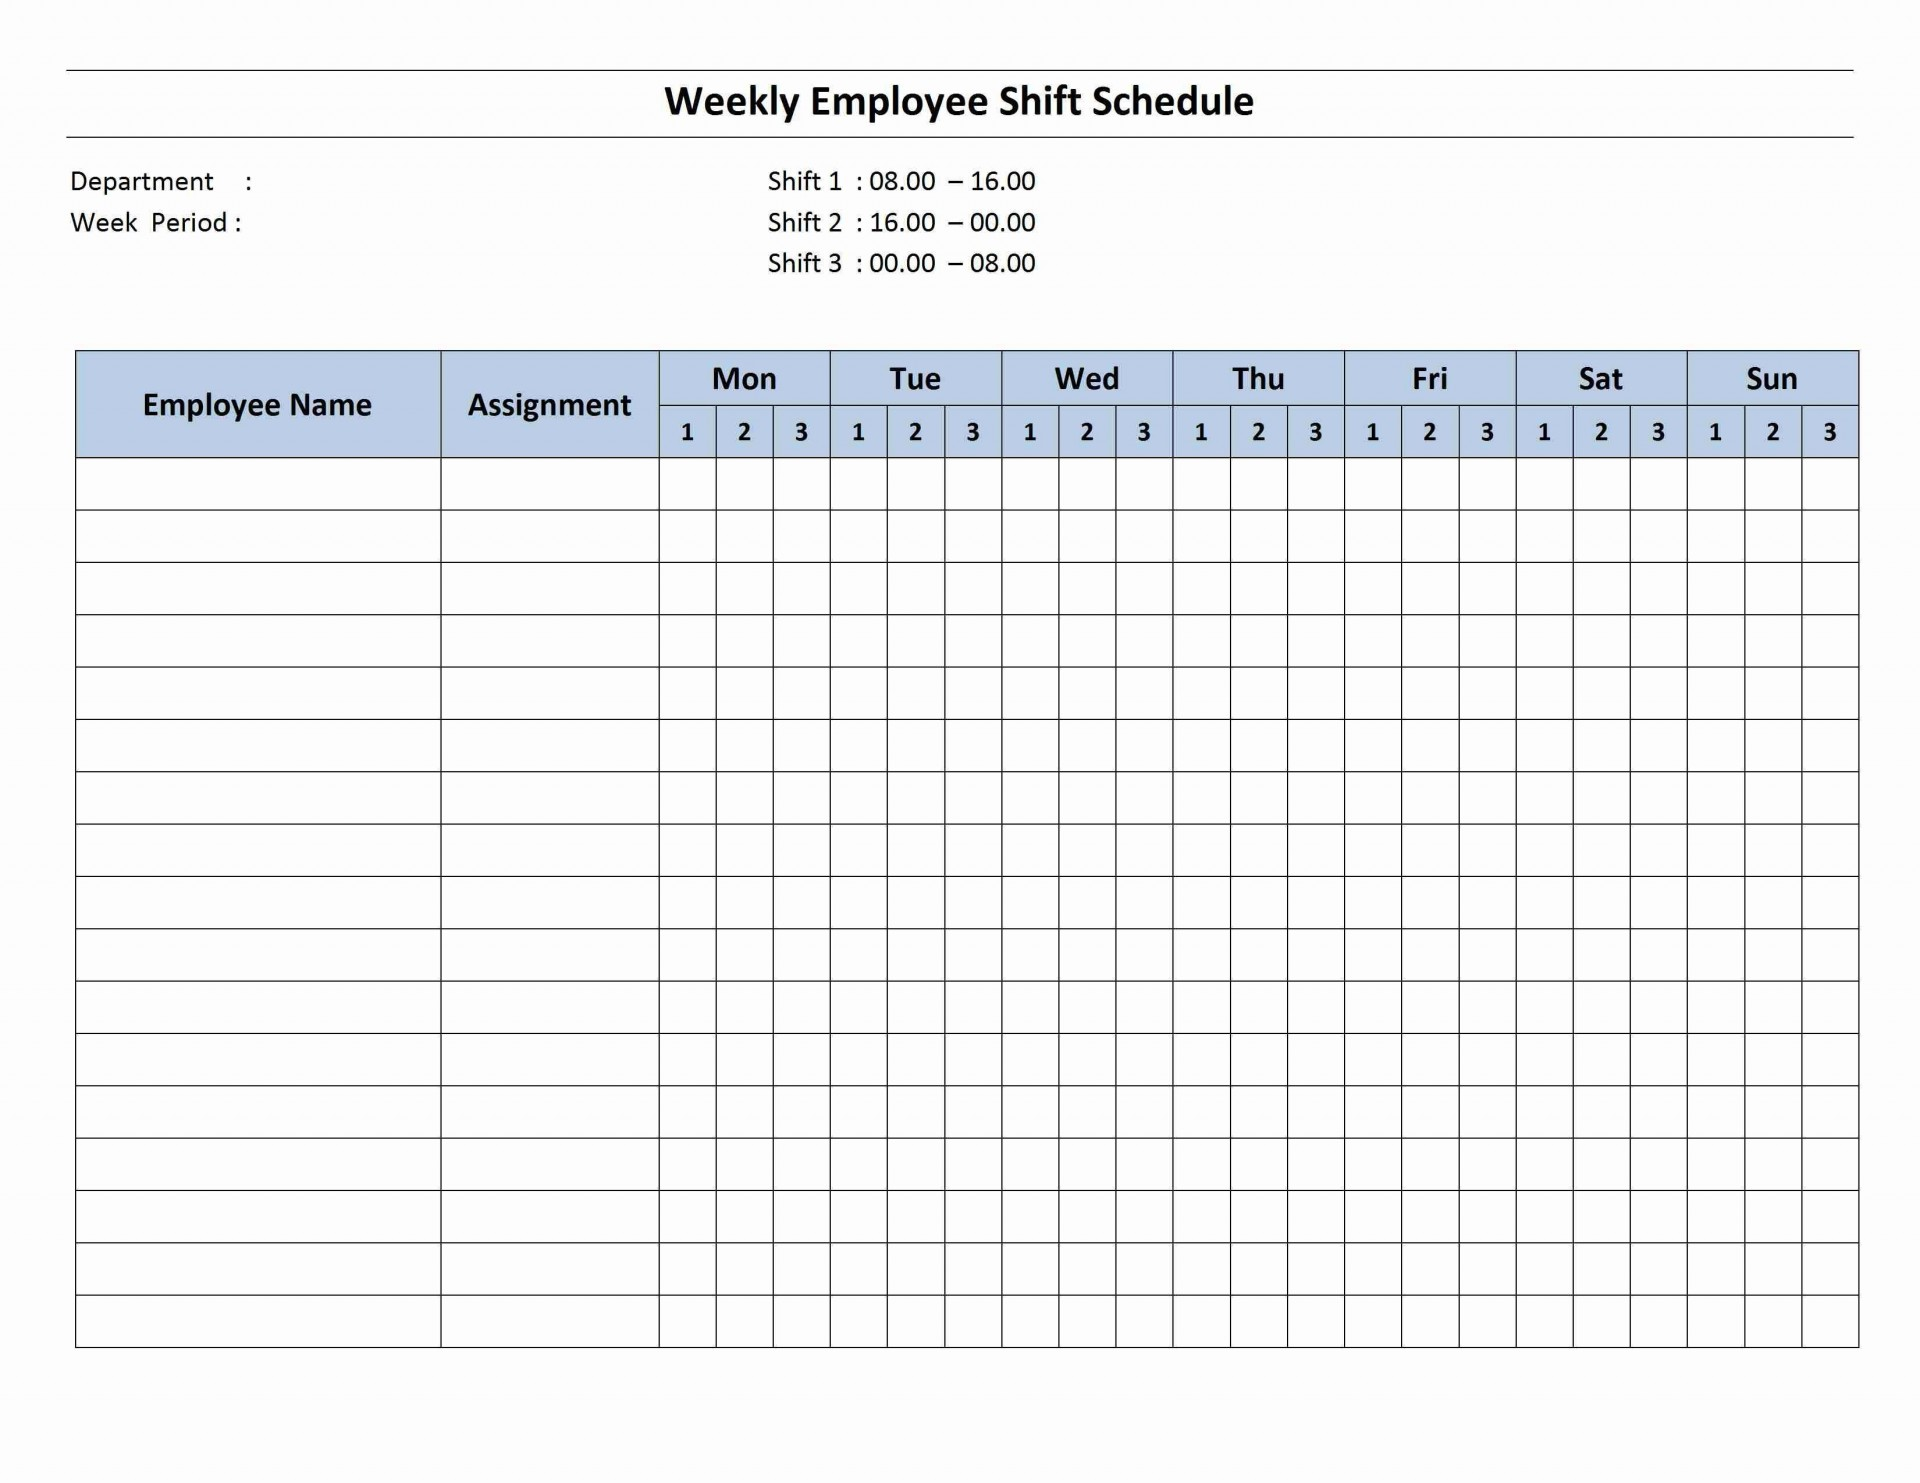 004 Striking Employee Schedule Template Free Image  Downloadable Weekly Work Training Excel Shift1920